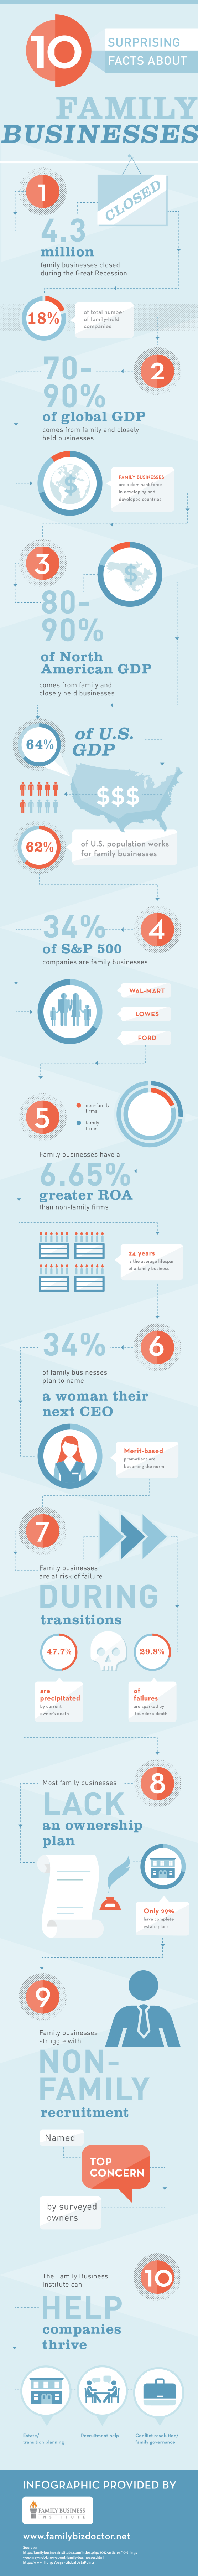 Infographic: 10 Surprising Facts about Family Businesses [Infographic]